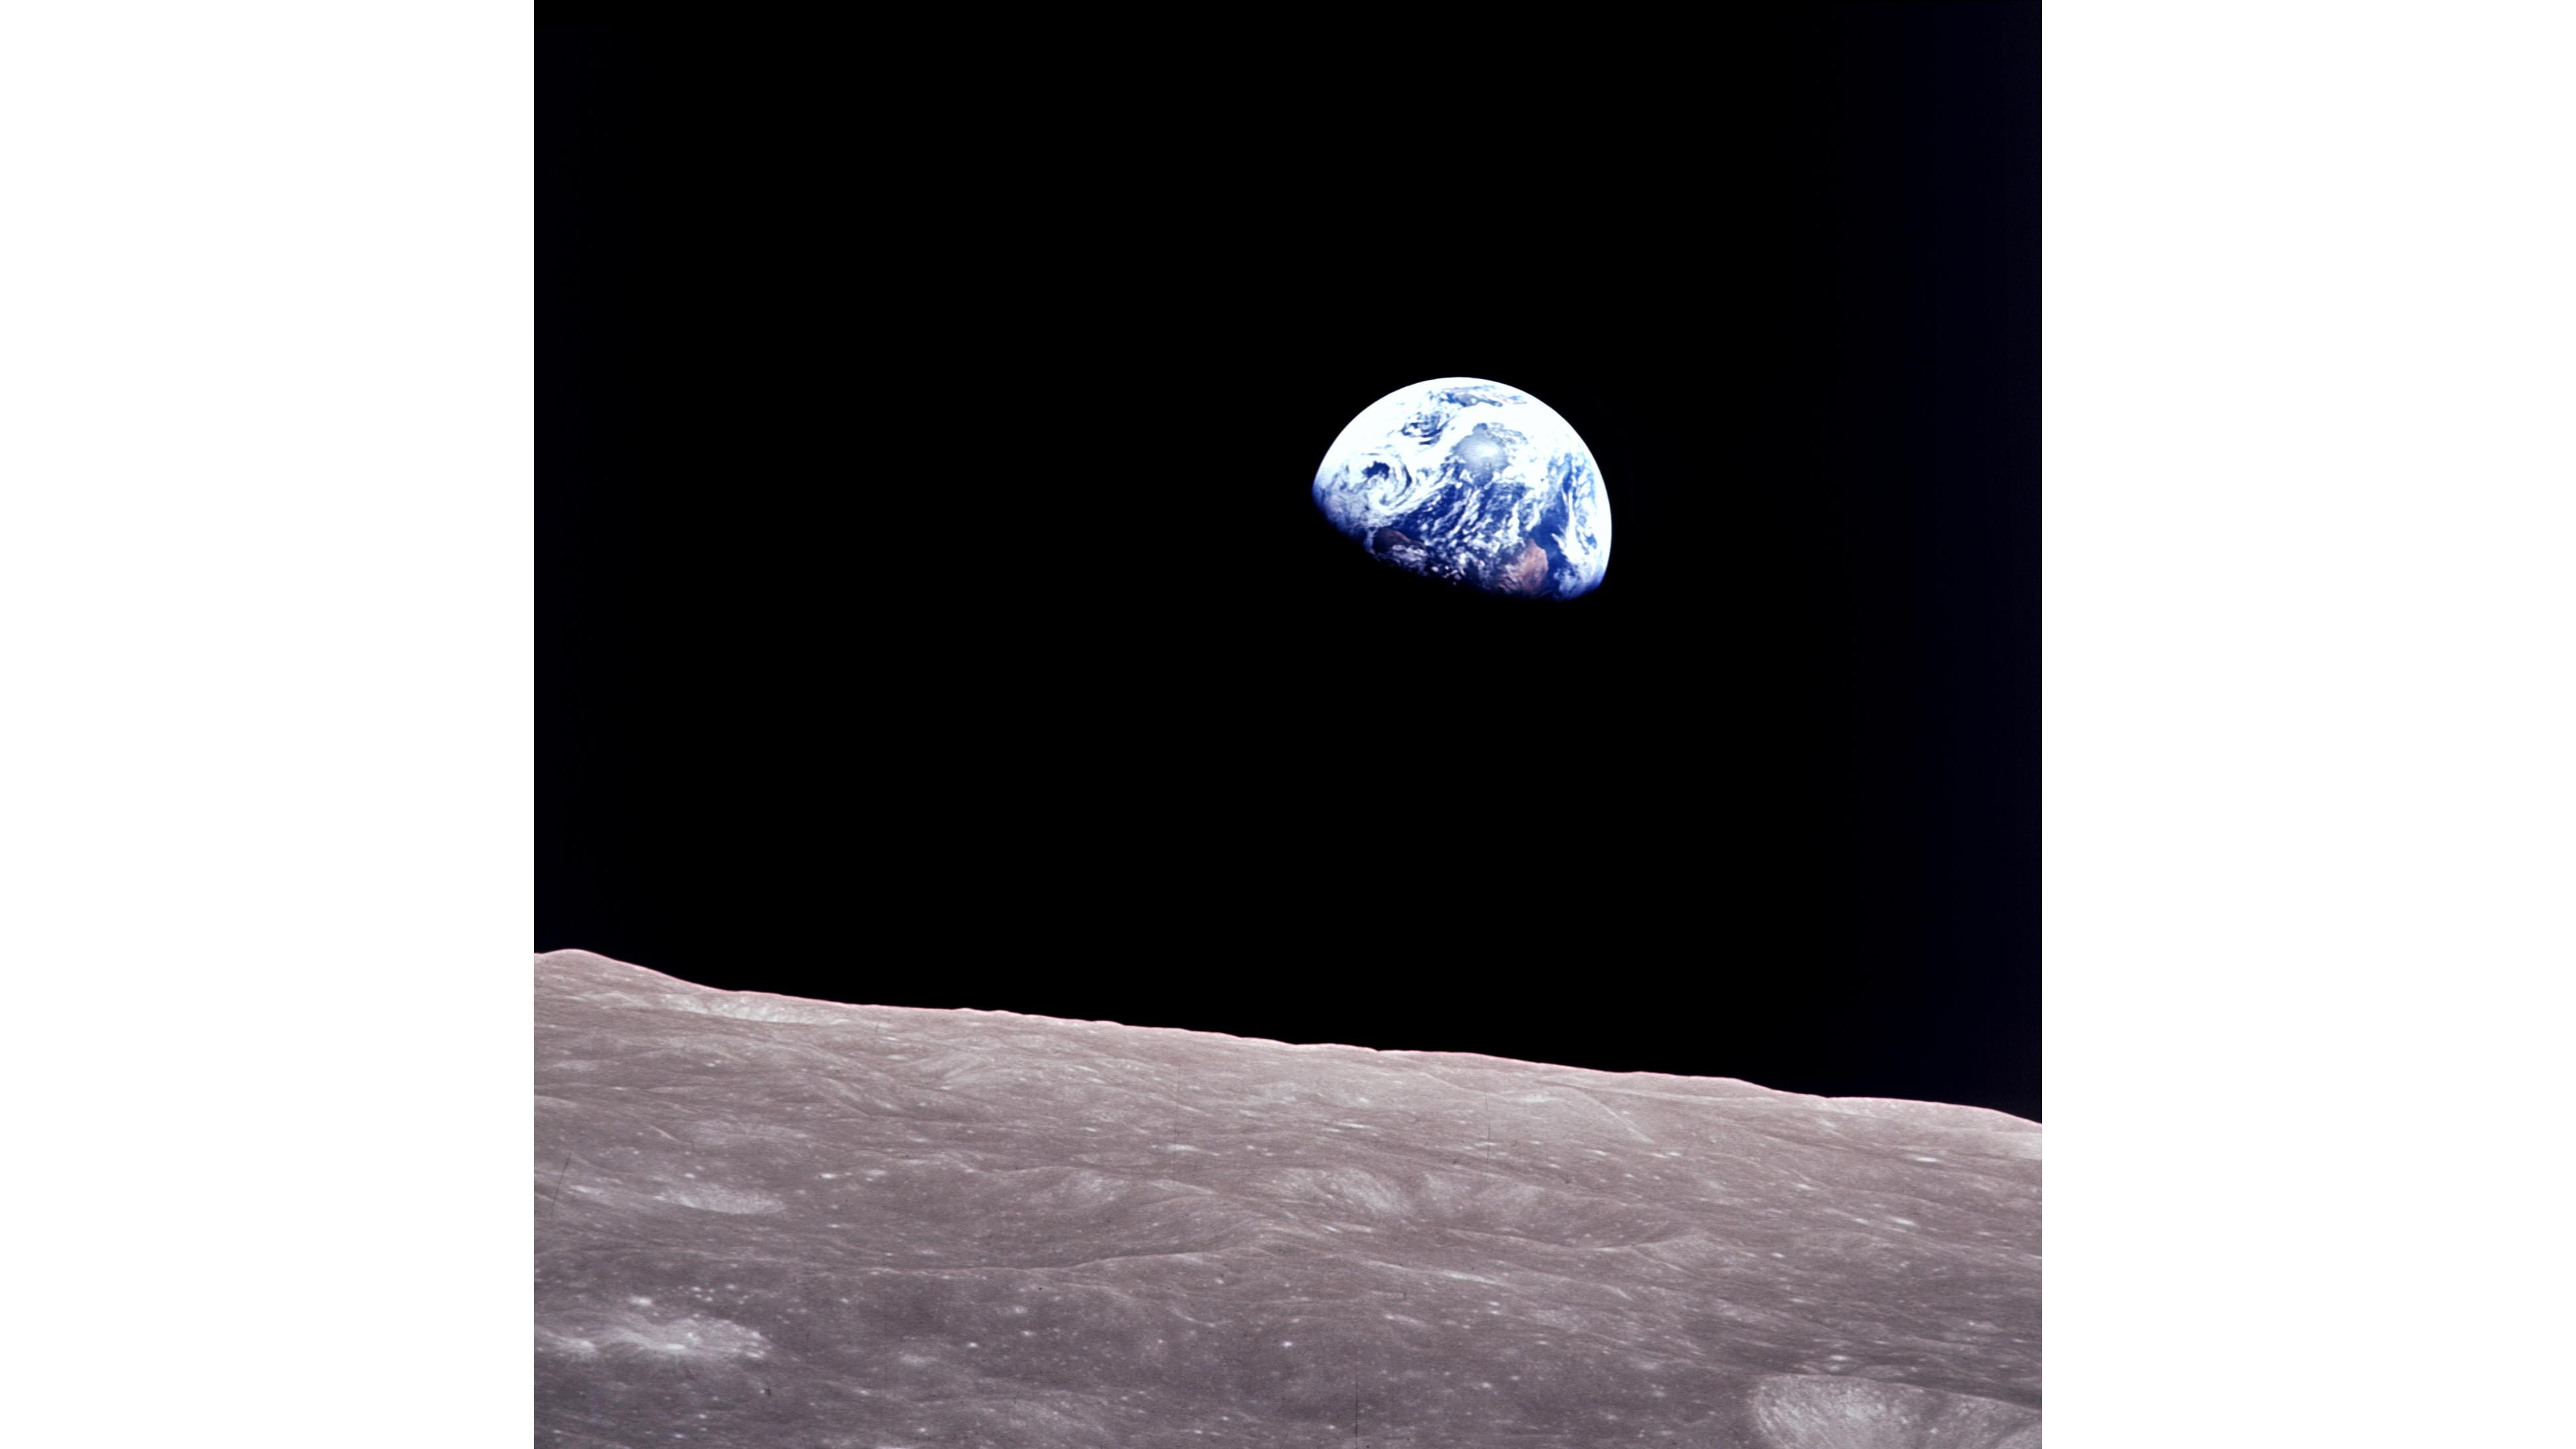 Taken aboard Apollo 8 by Bill Anders, this iconic picture shows Earth peeking out from beyond the lunar surface as the first crewed spacecraft circumnavigated the Moon.